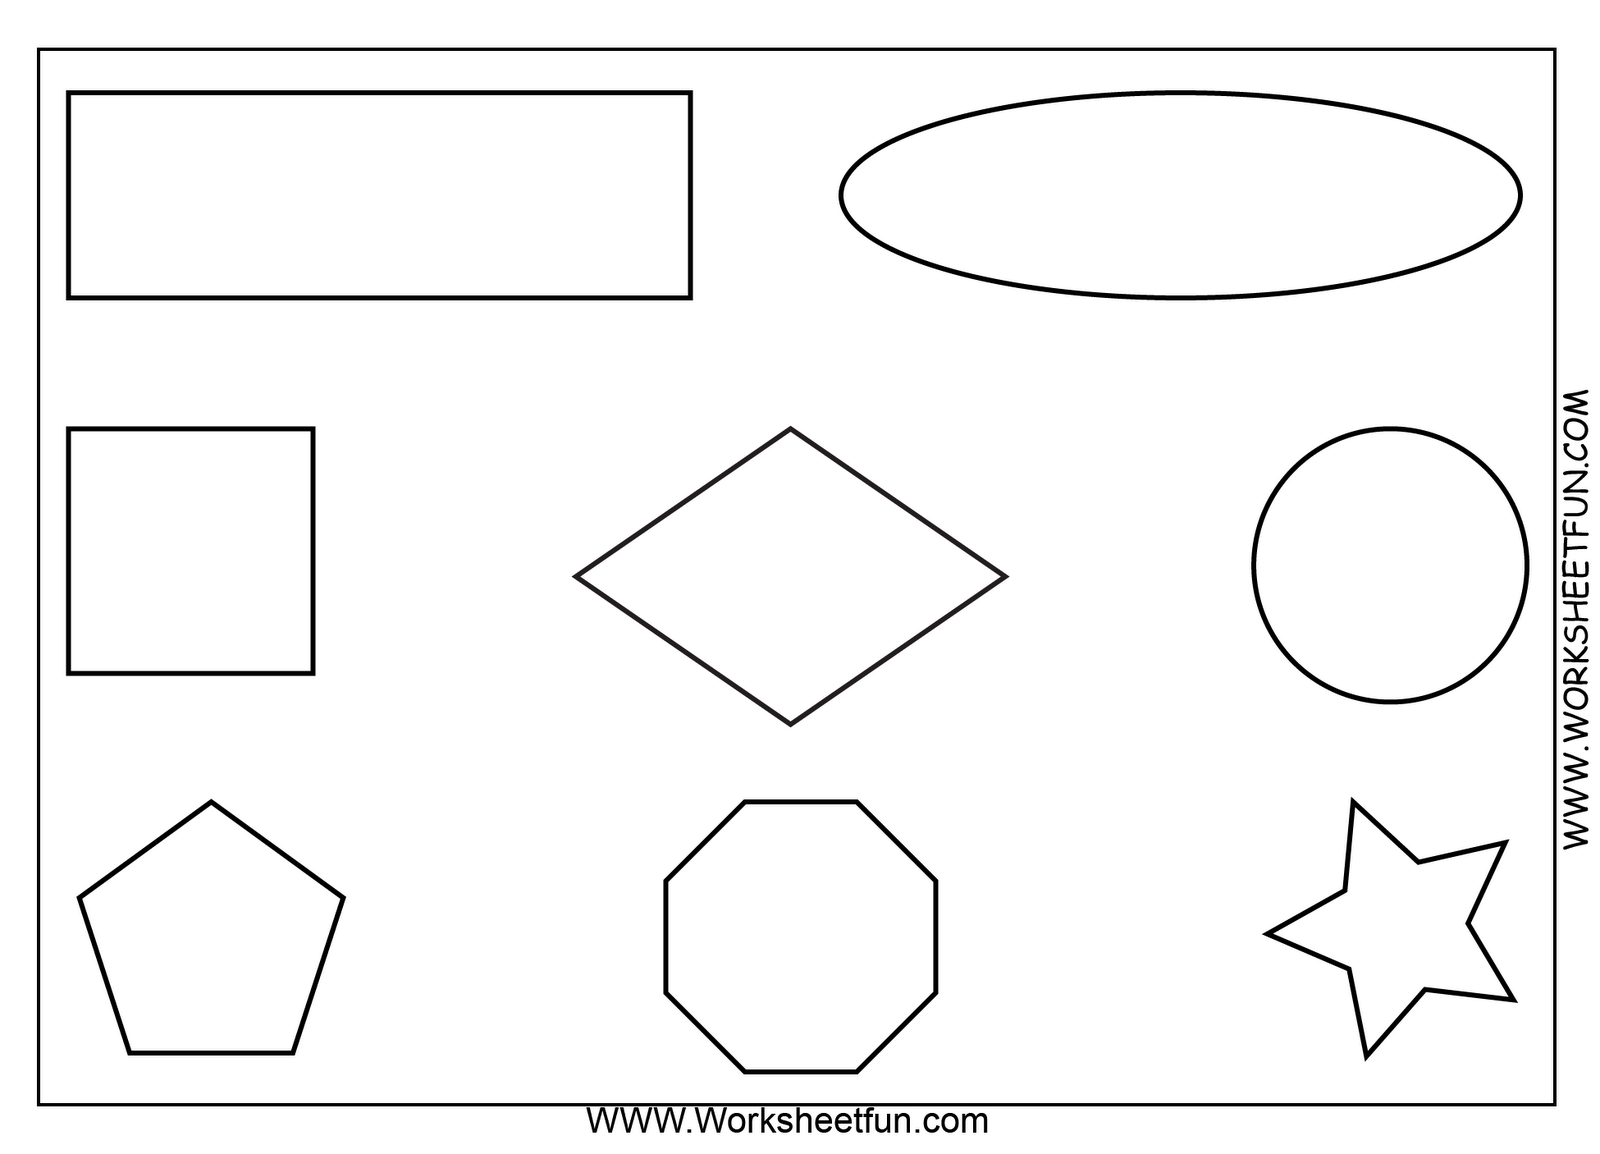 shapes coloring pages for preschool - photo#7